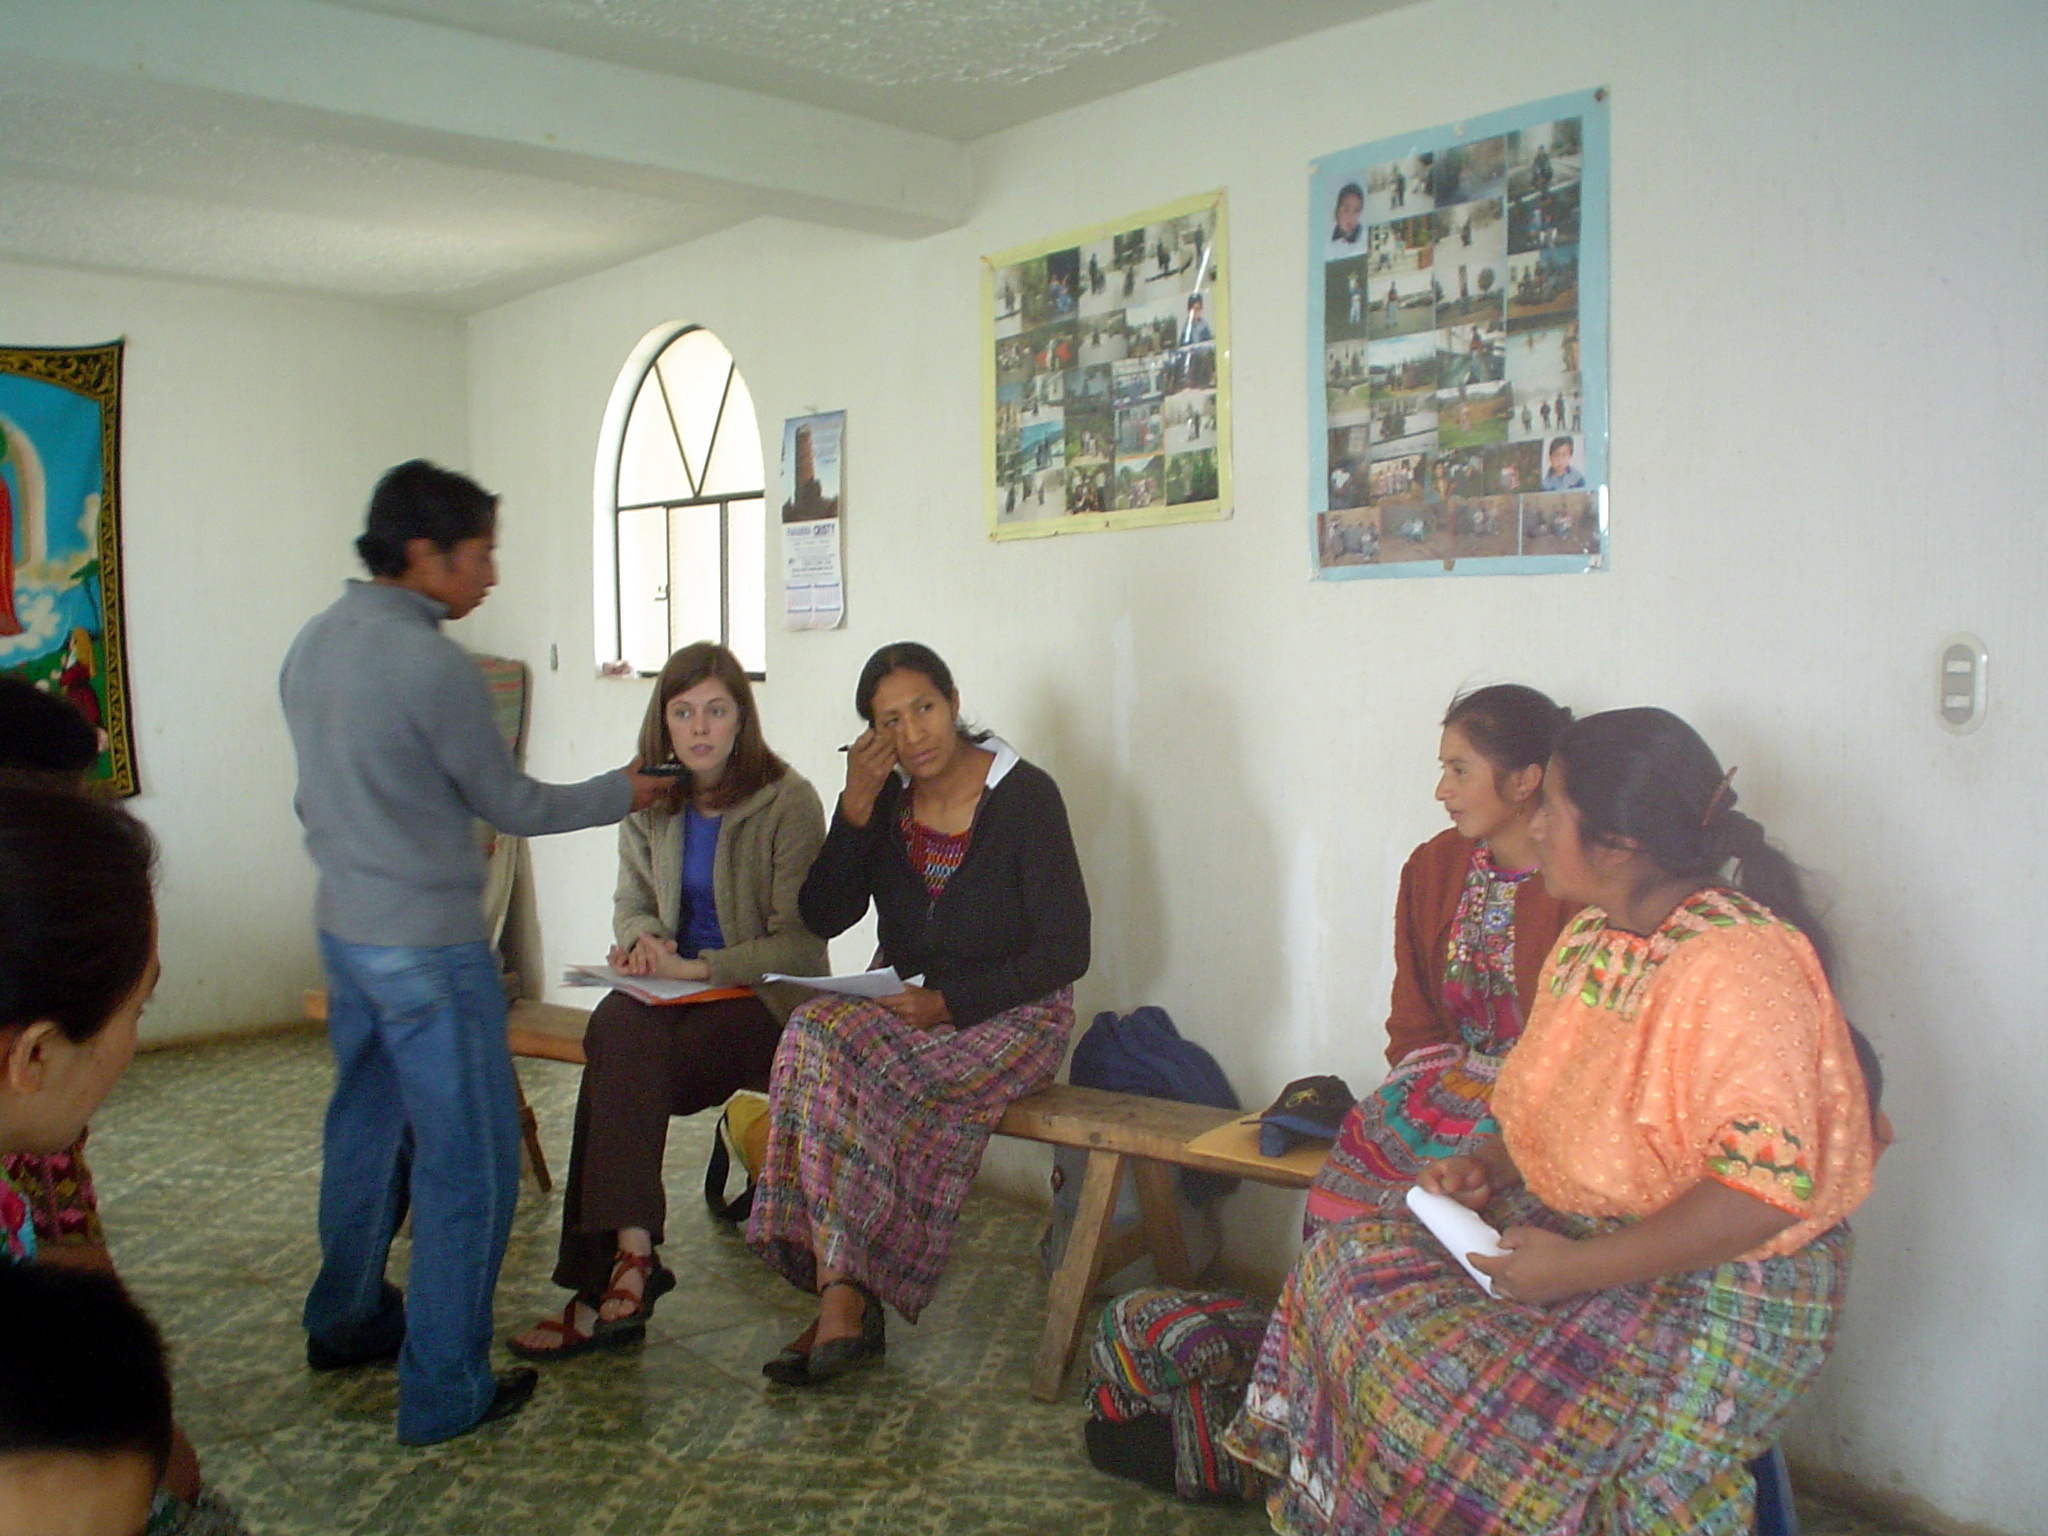 With support from a local team (to the right and left of me) who helped gain trust, acceptance, and translate from Spanish to K'iche' and back as needed, we conducted several focus group interviews with some extremely courageous women. Conversations recorded for accuracy and transcriptions.